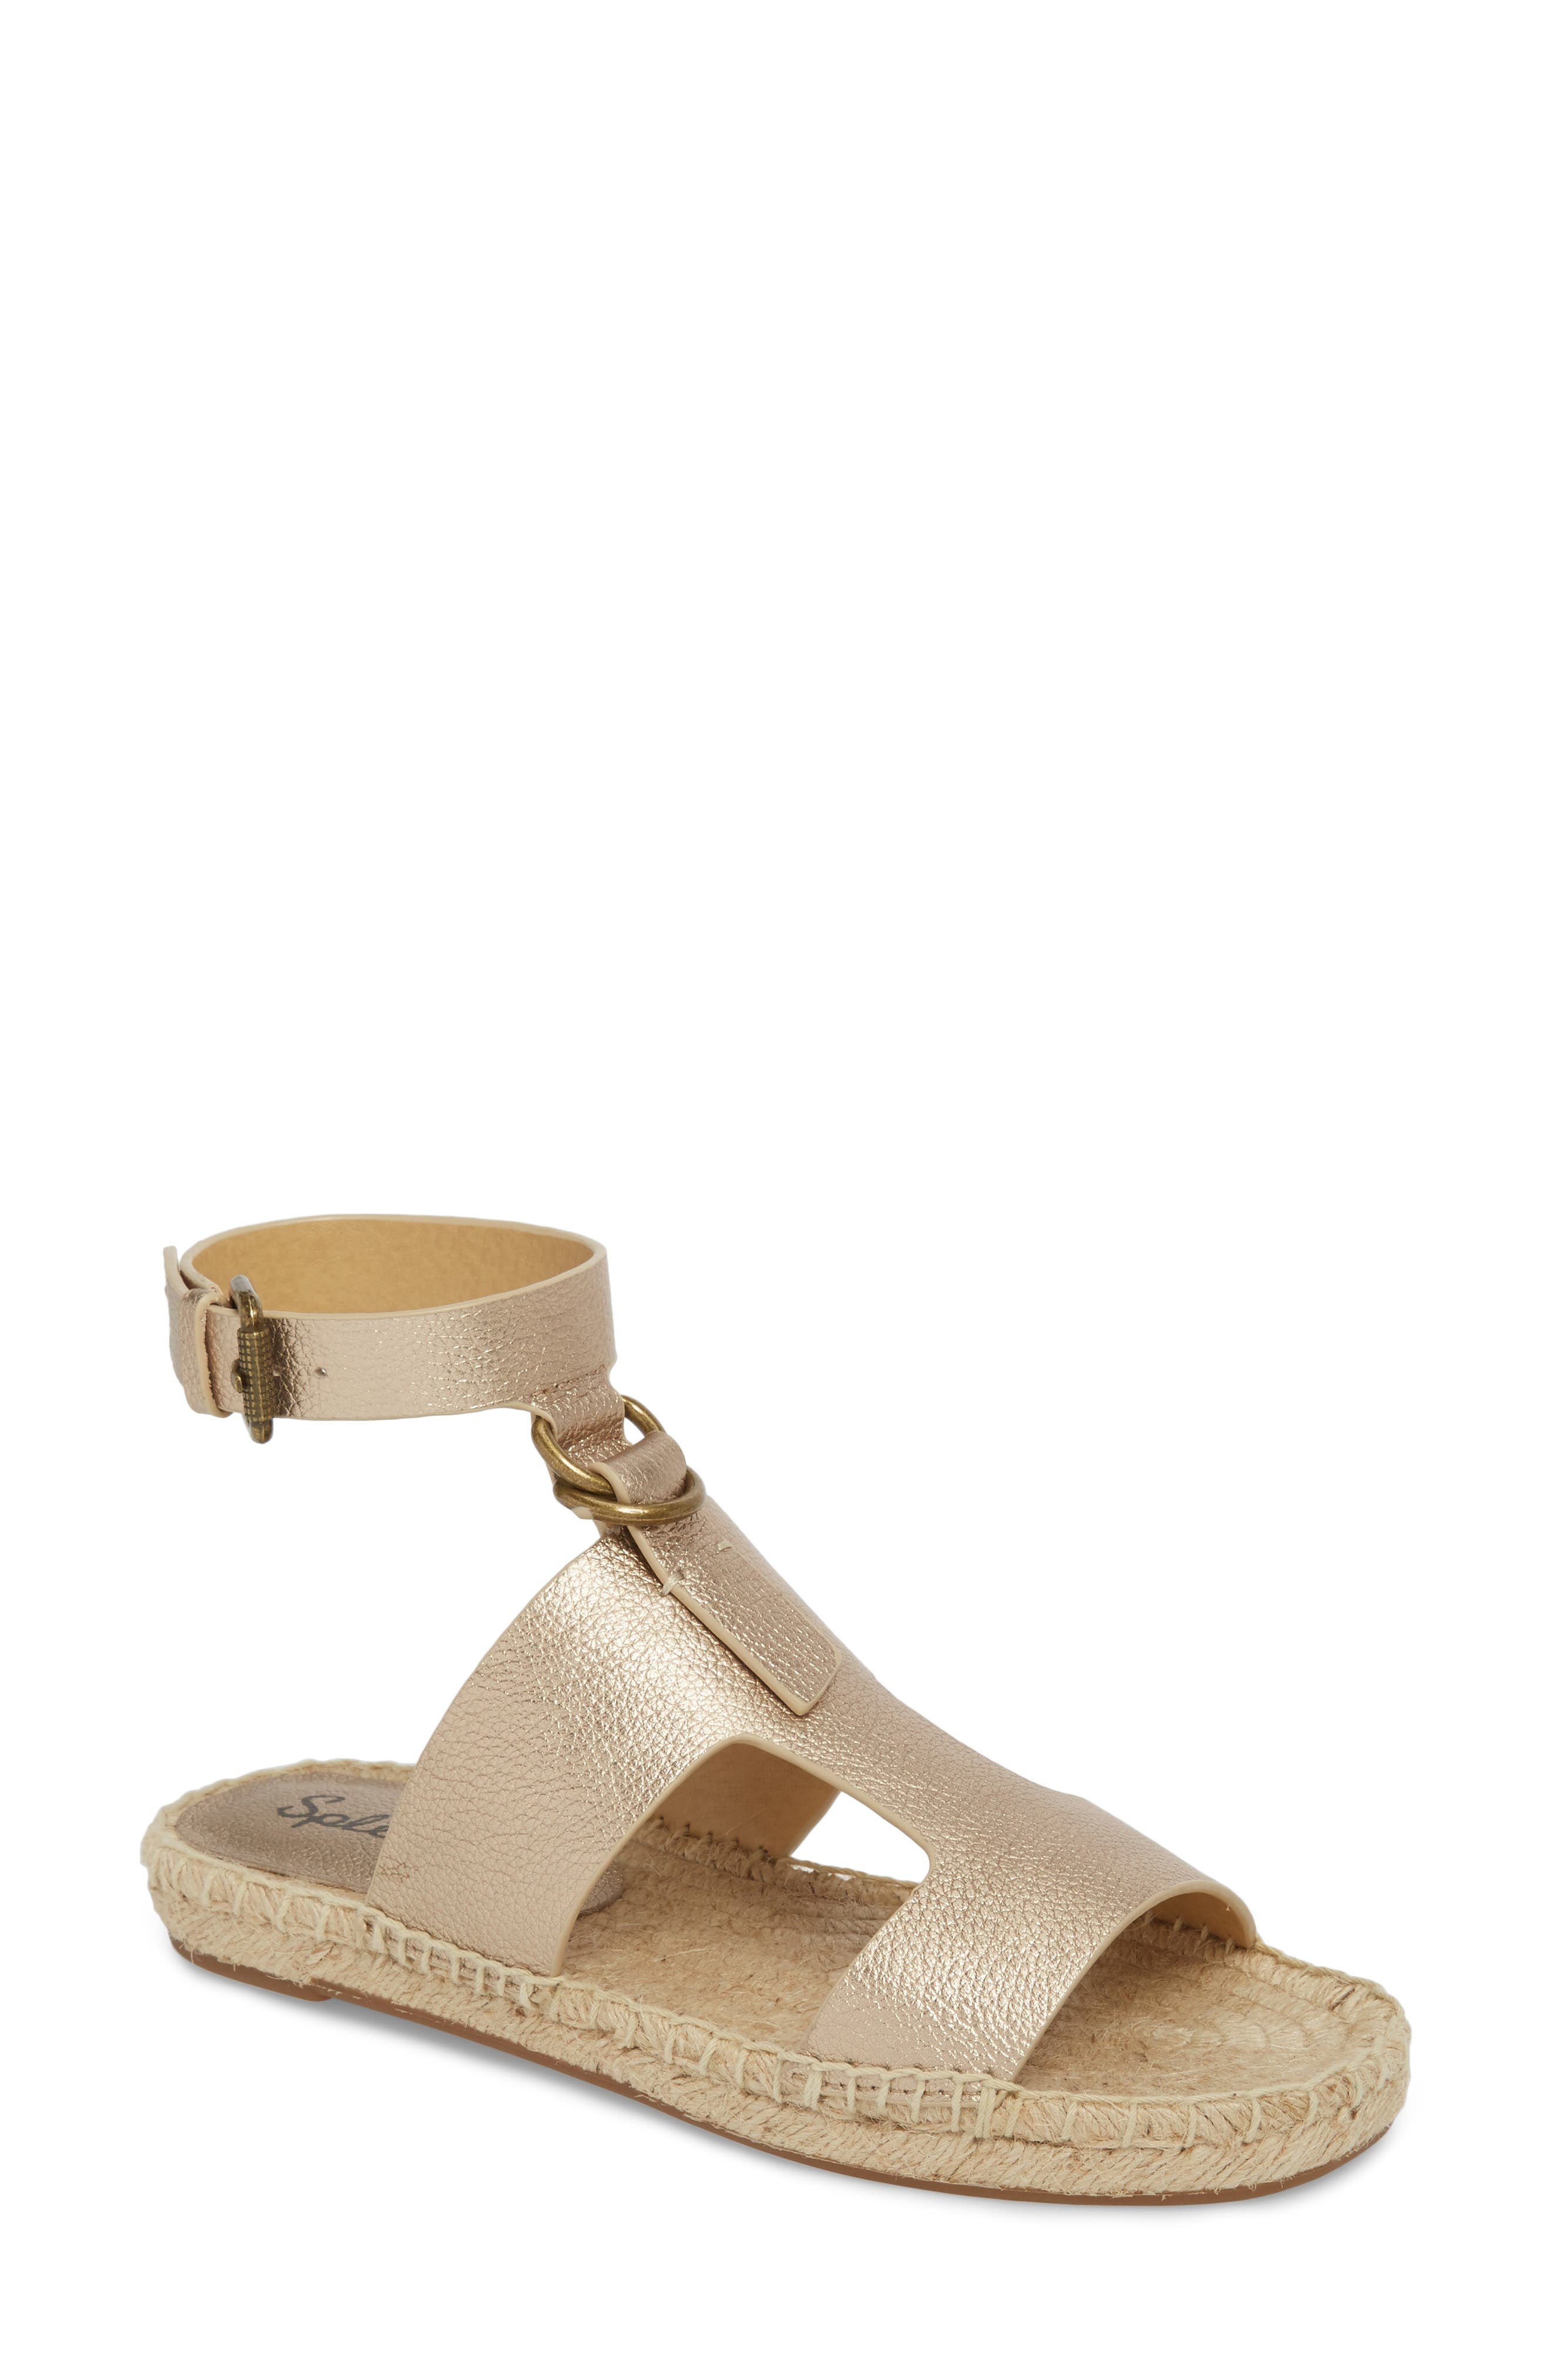 Farley Espadrille Sandal,                         Main,                         color, Champagne Leather